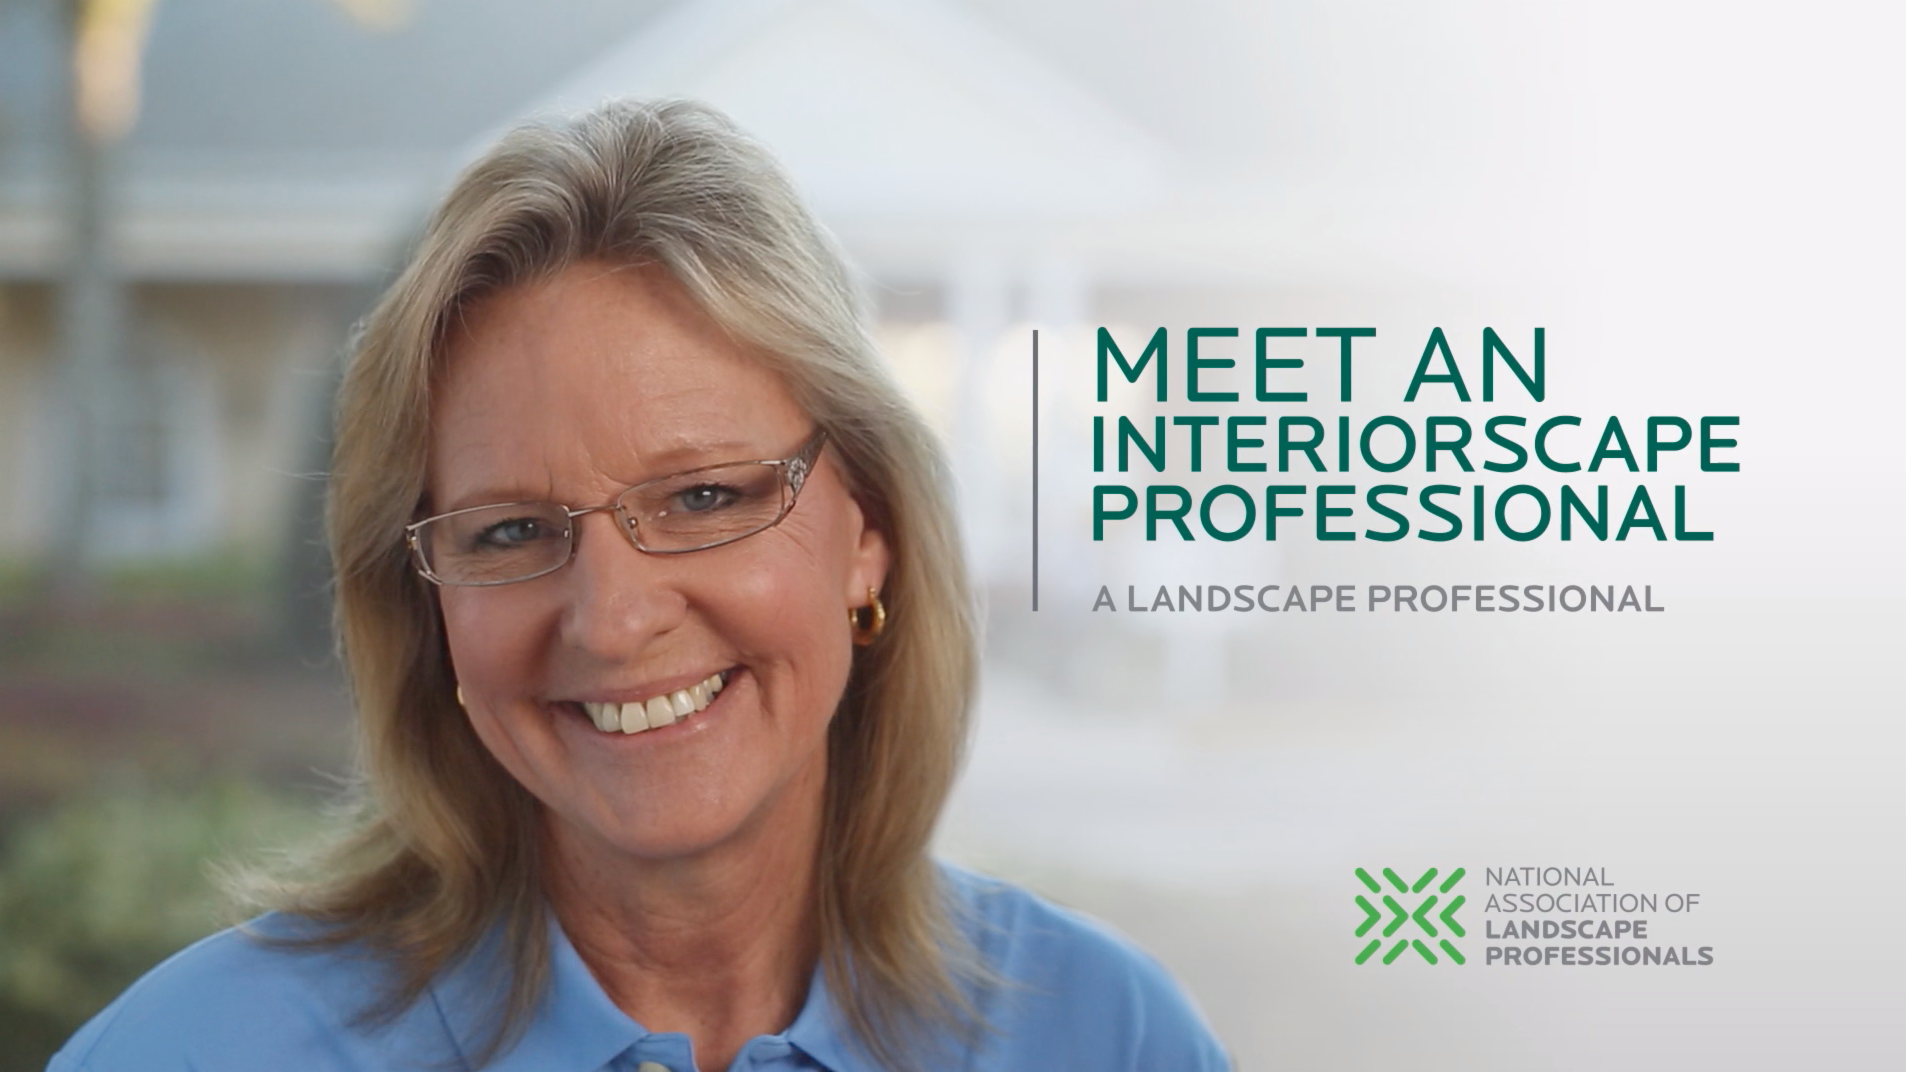 Meet an Interiorscape Professional - Landscape Industry Testimonial Videos